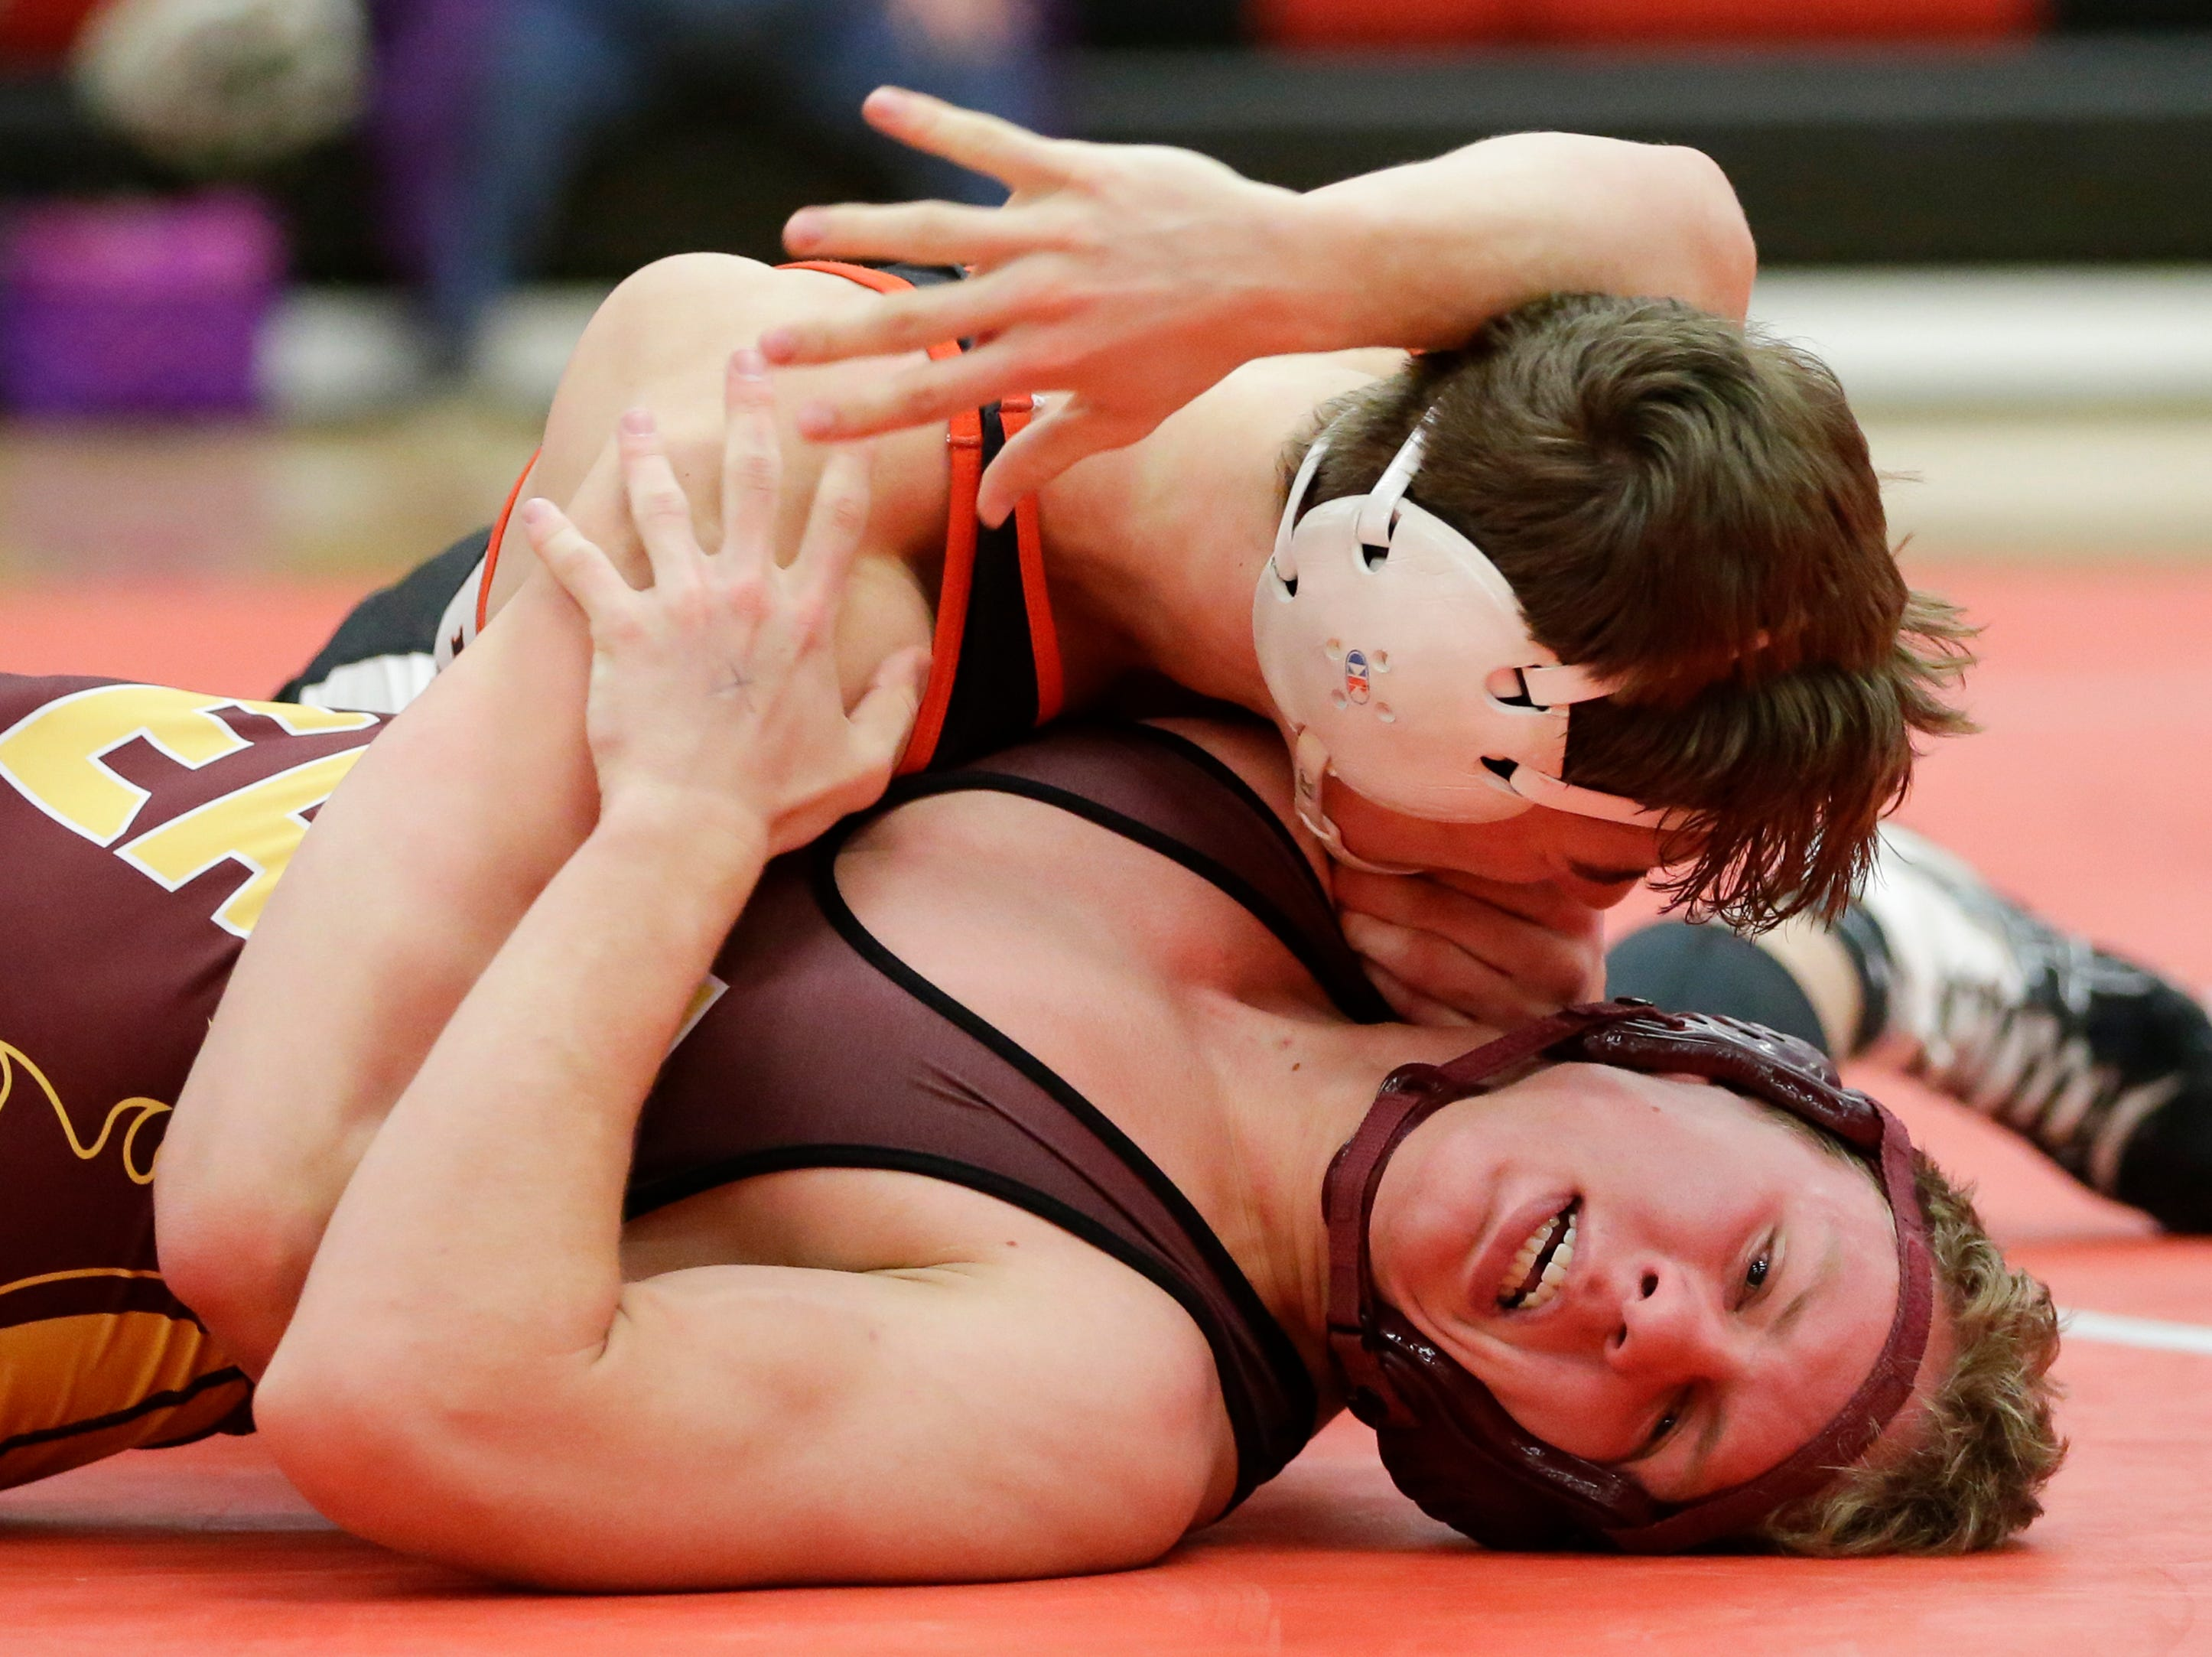 Manitowoc Lincoln's Jacob DeBruin wrestles West Bend East's Brady Schmidt in the 170 weight class during the WIAA D1 Regionals at Manitowoc Lincoln High School Saturday, February 9, 2019, in Manitowoc, Wis. Joshua Clark/USA TODAY NETWORK-Wisconsin